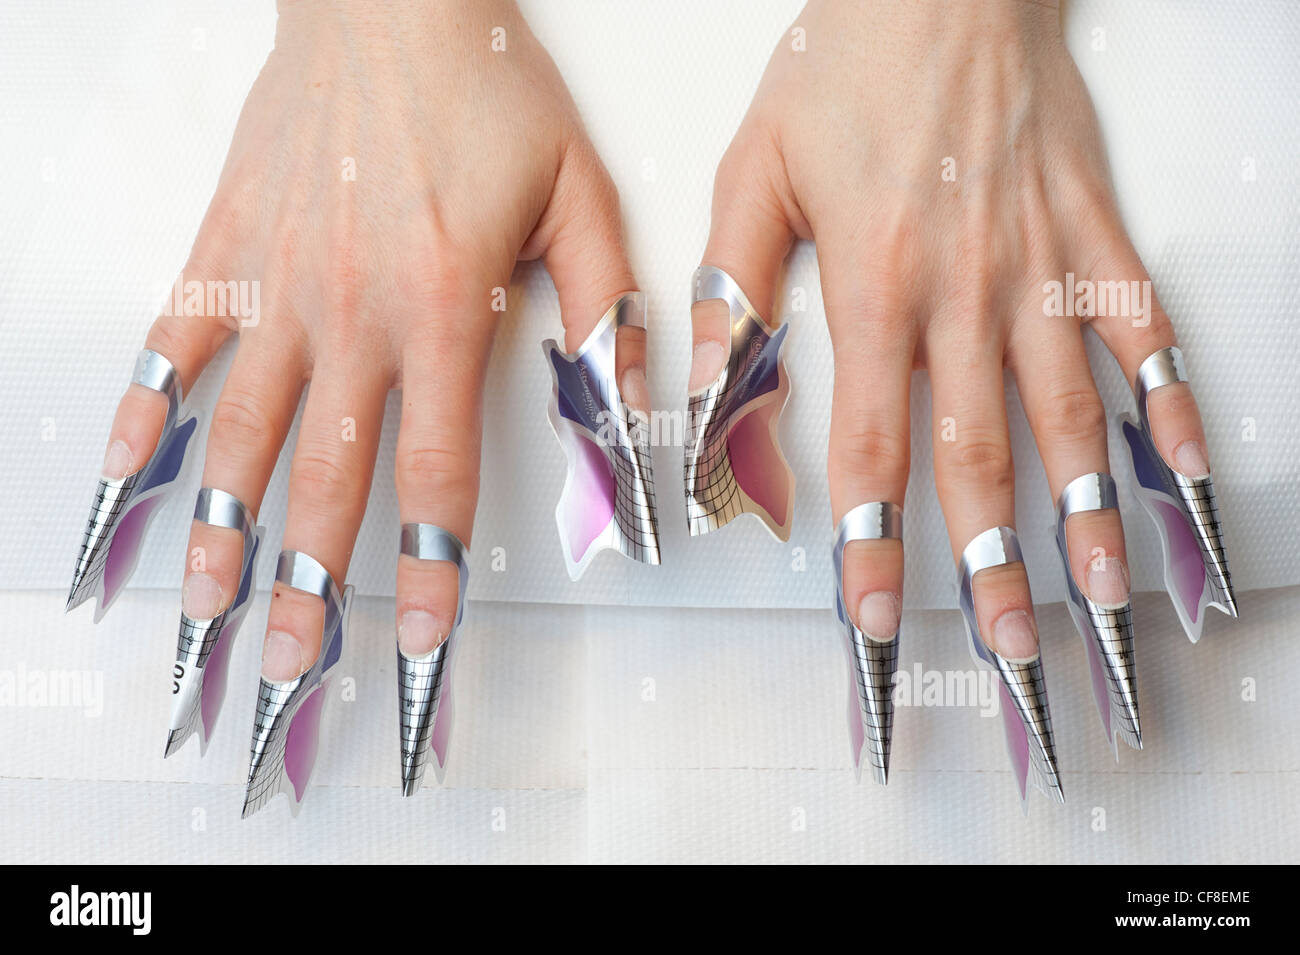 Gel Nails Stock Photos & Gel Nails Stock Images - Alamy